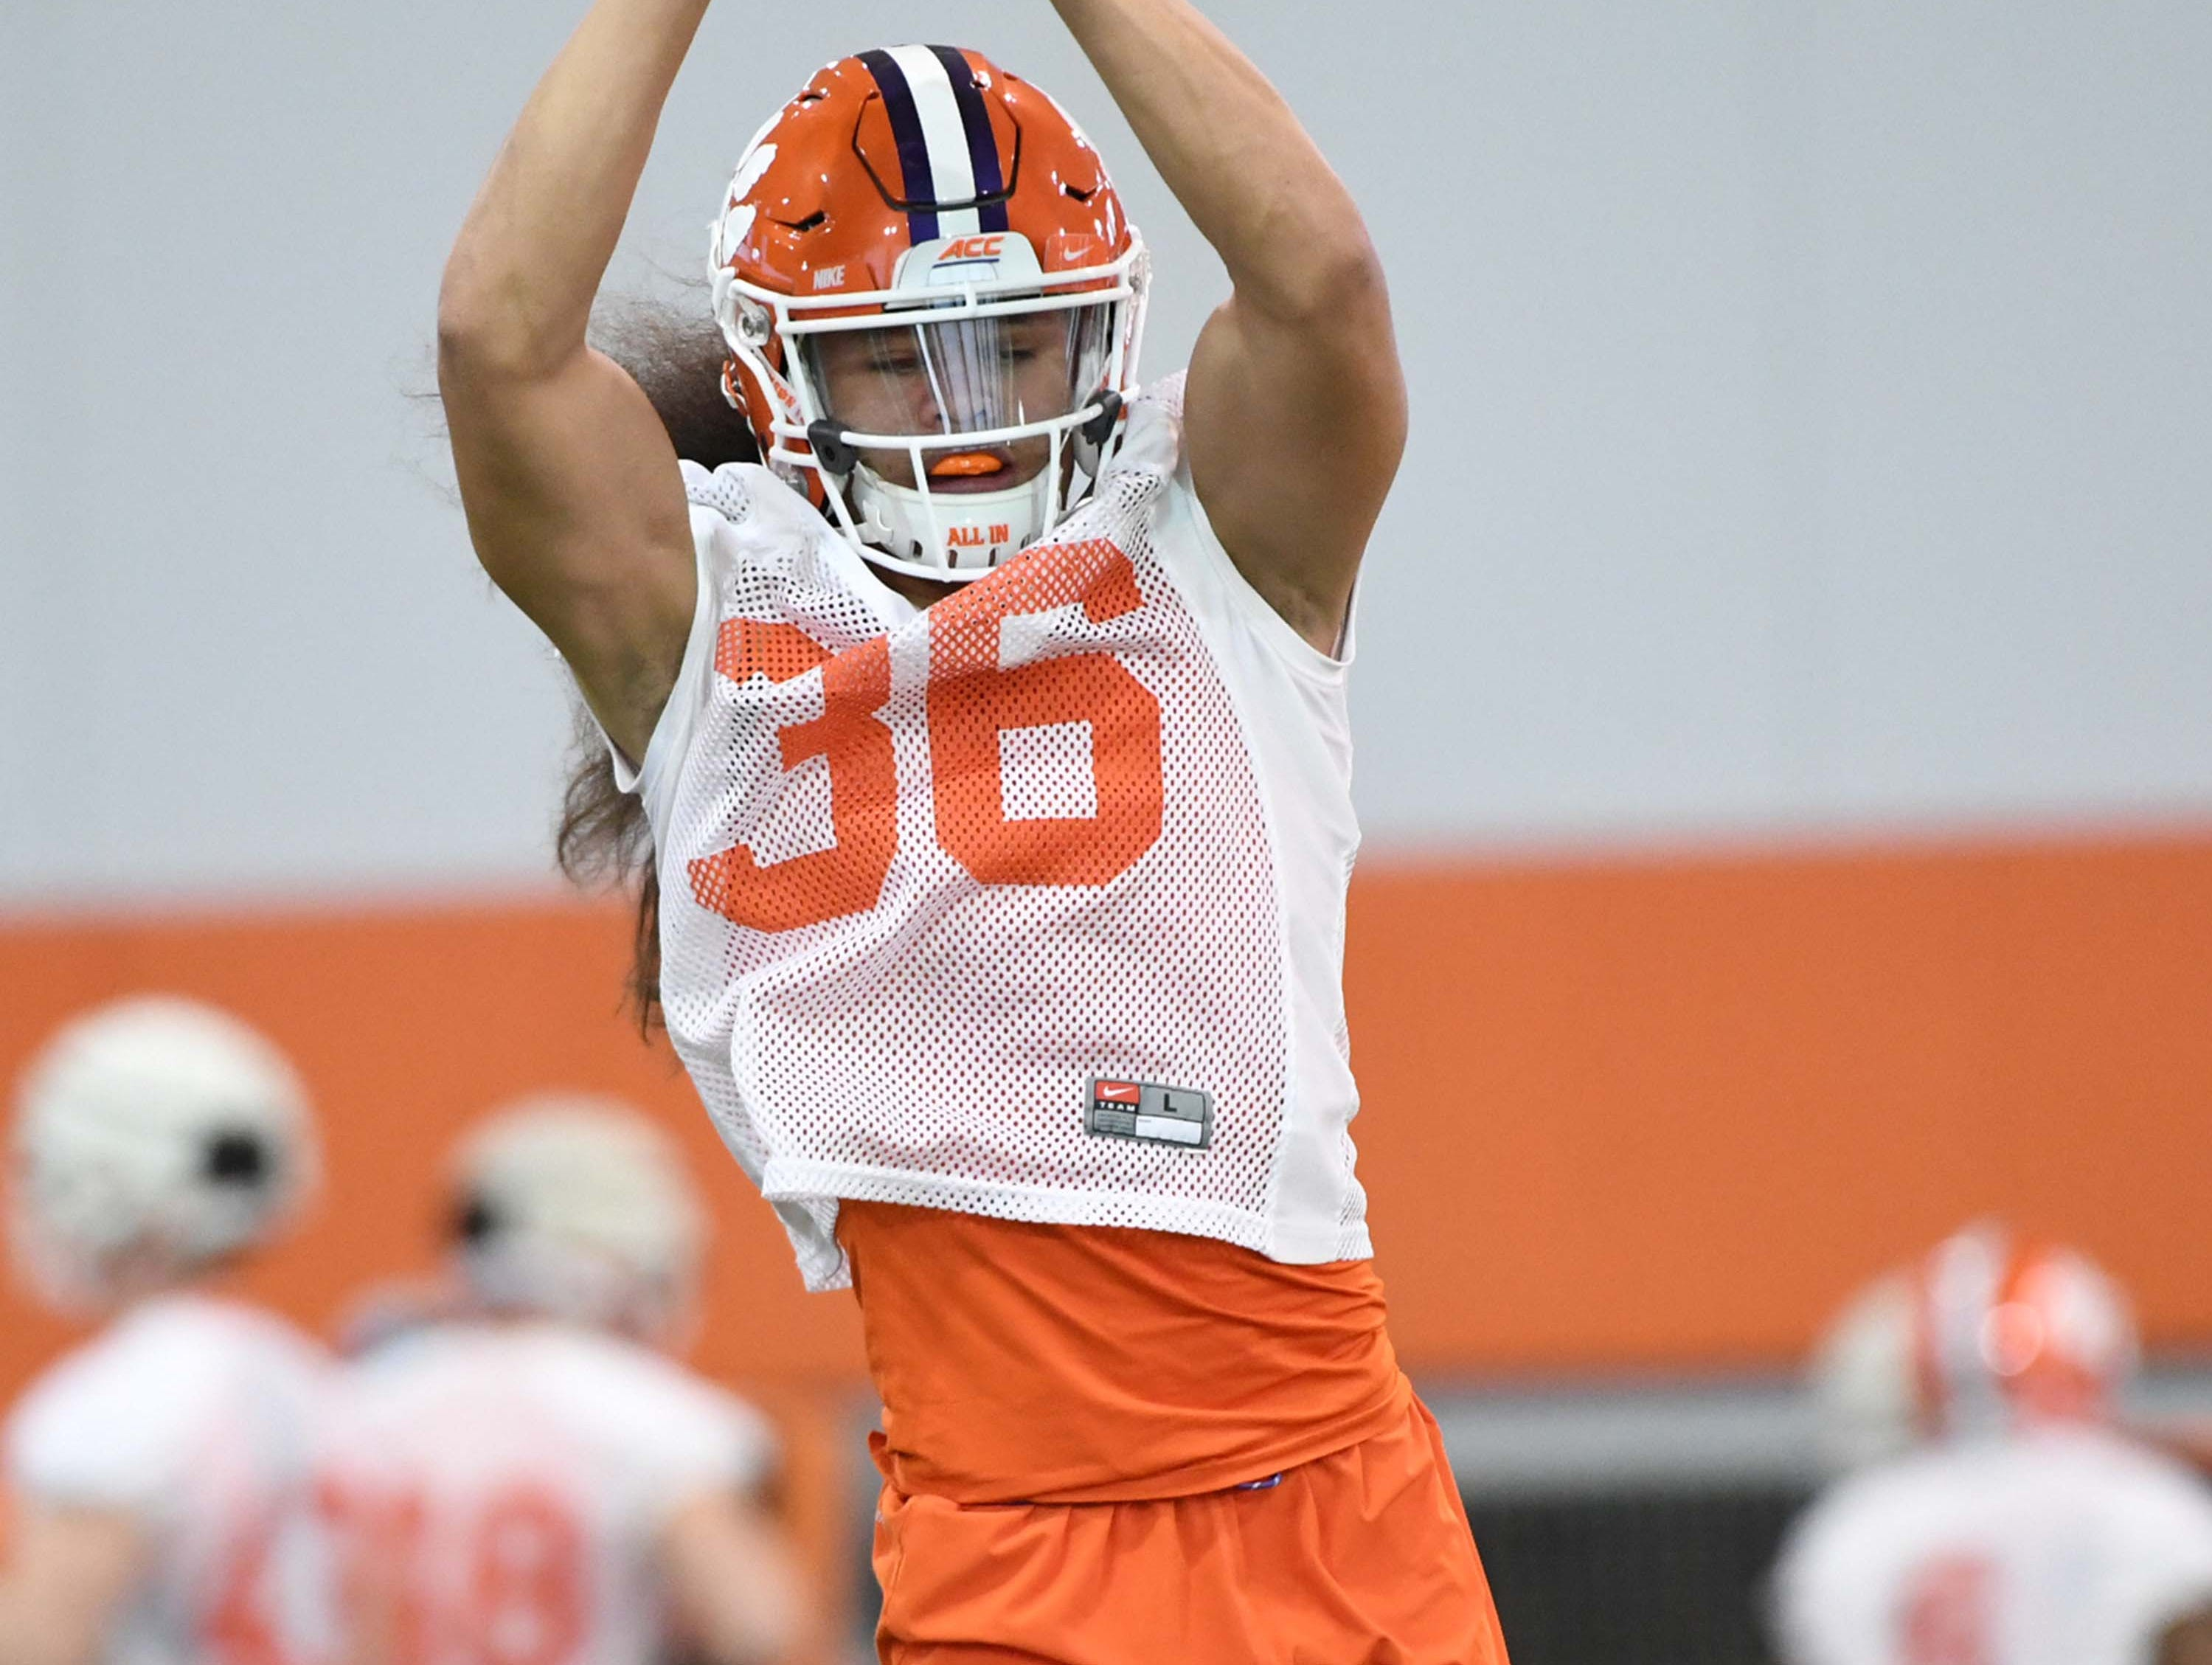 Clemson defensive back Lannden Zanders (36) during the first practice at the Clemson Indoor Practice Facility in Clemson Wednesday, February 27, 2019.